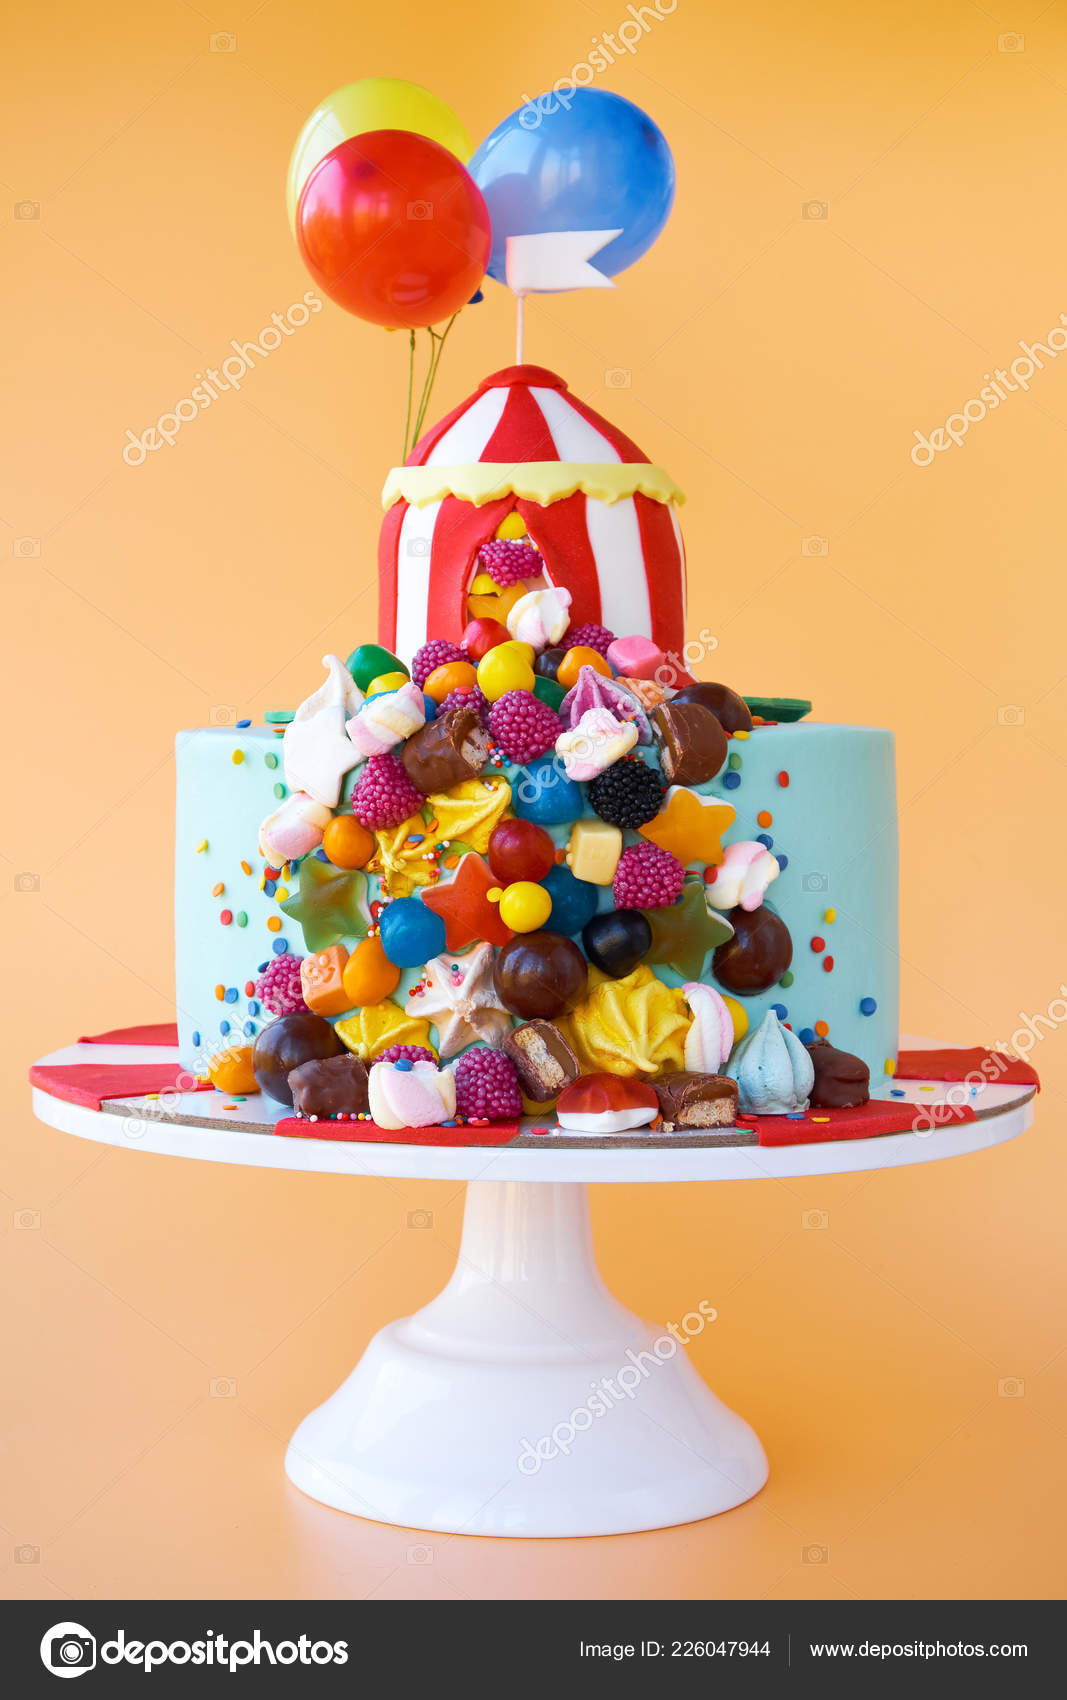 Birthday Cake Decorated Circus Tent Colorful Sweets Balloons Orange Background Stock Photo